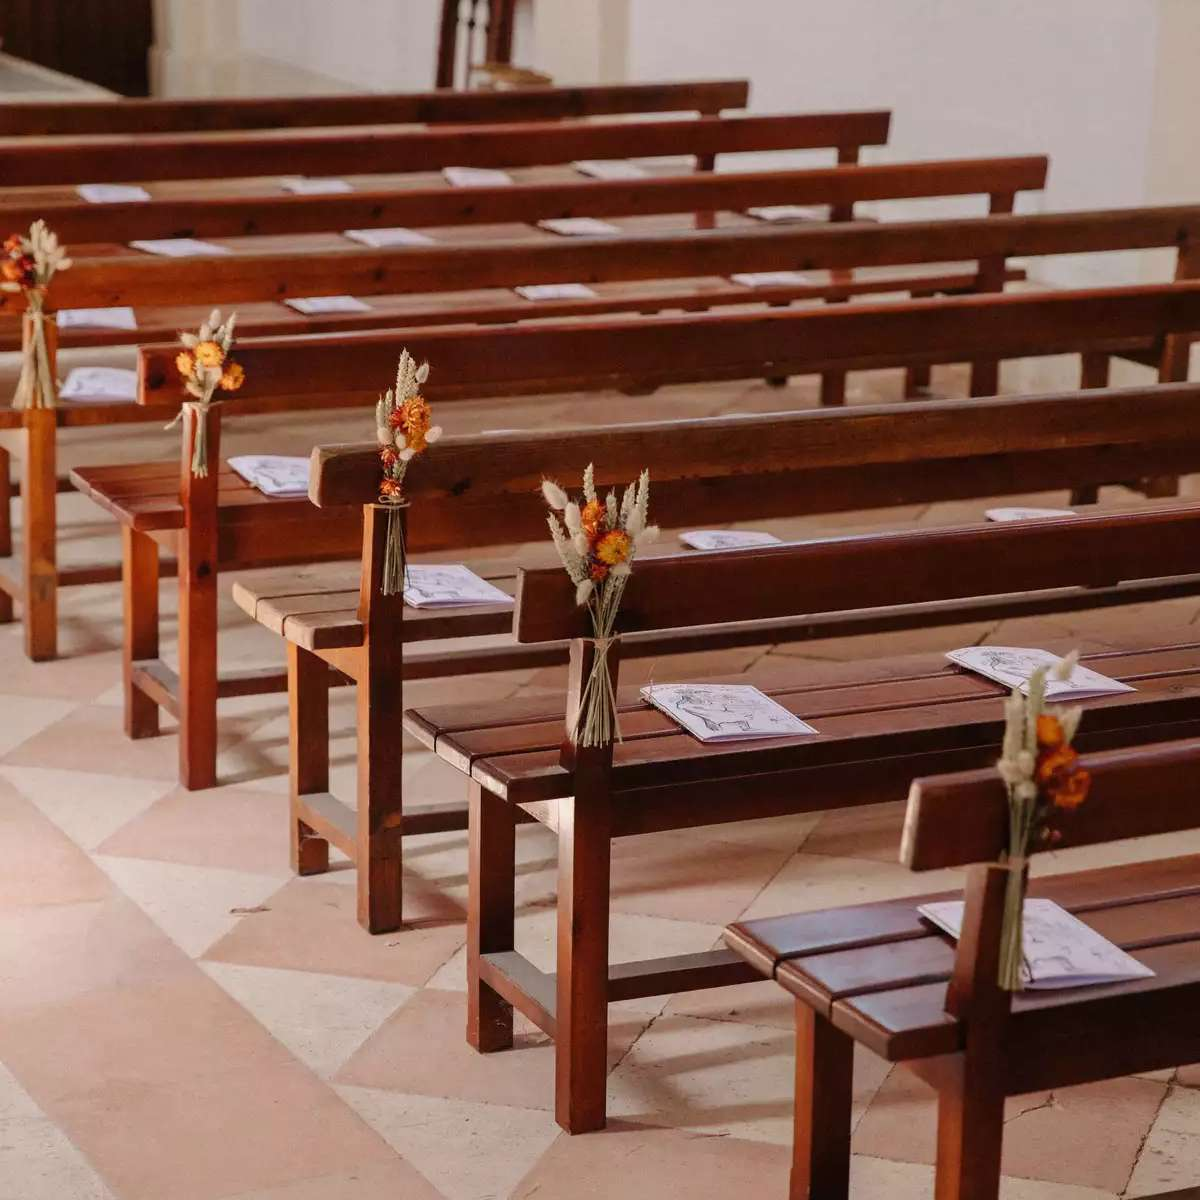 church pews with dried flowers